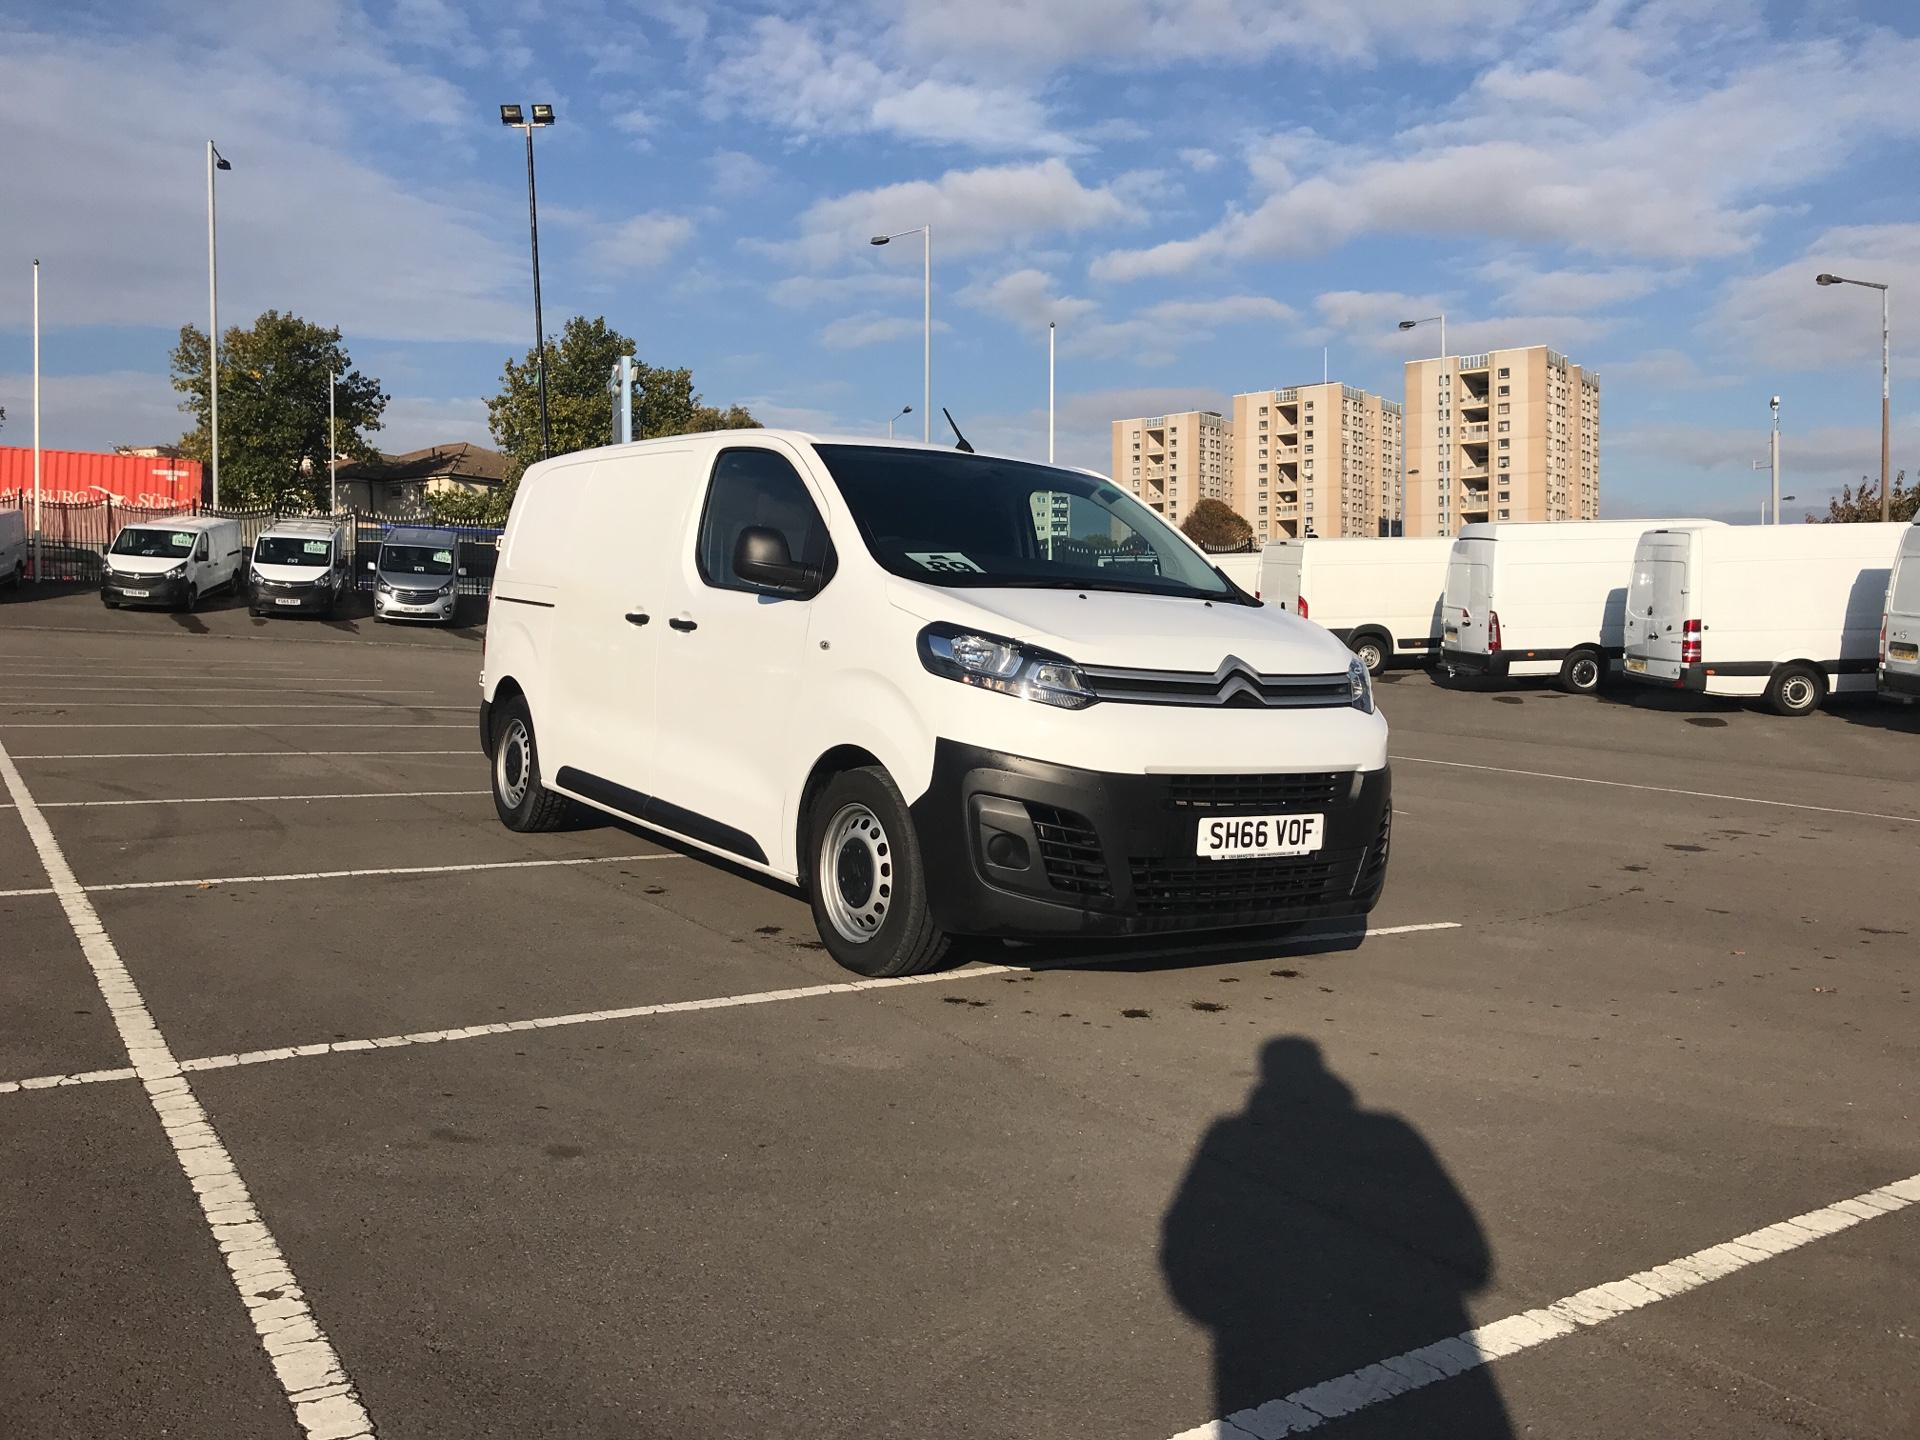 2016 Citroen Dispatch 1000 1.6 Bluehdi 115 Van X (SH66VOF)